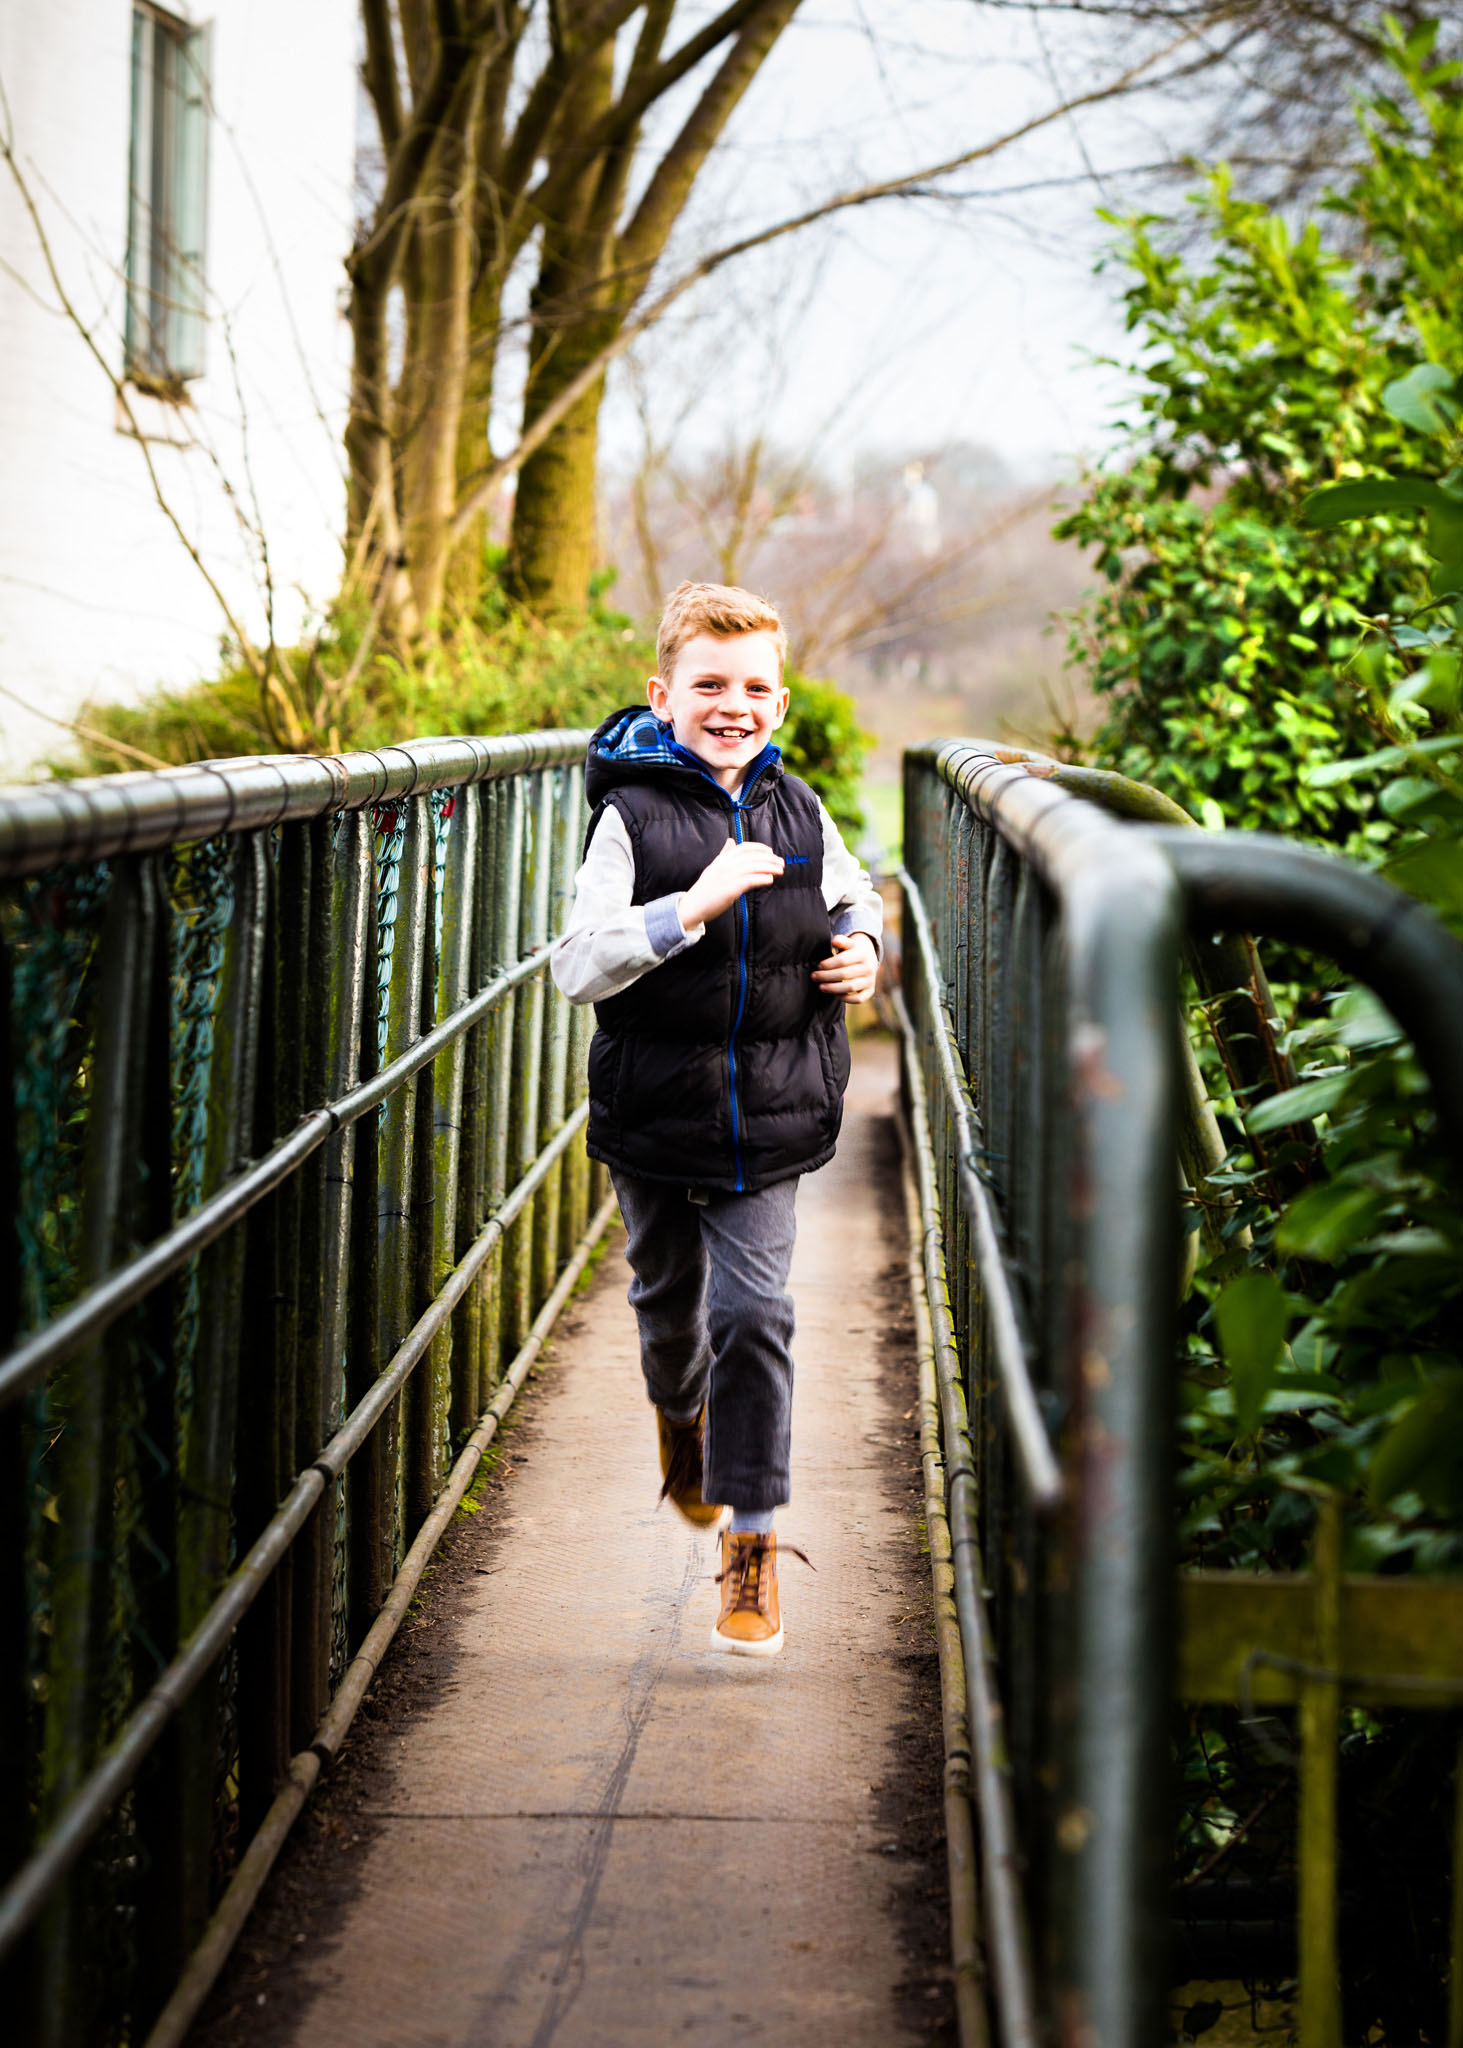 Lifestyle family portrait photography of a young boy running in Dunham, Cheshire